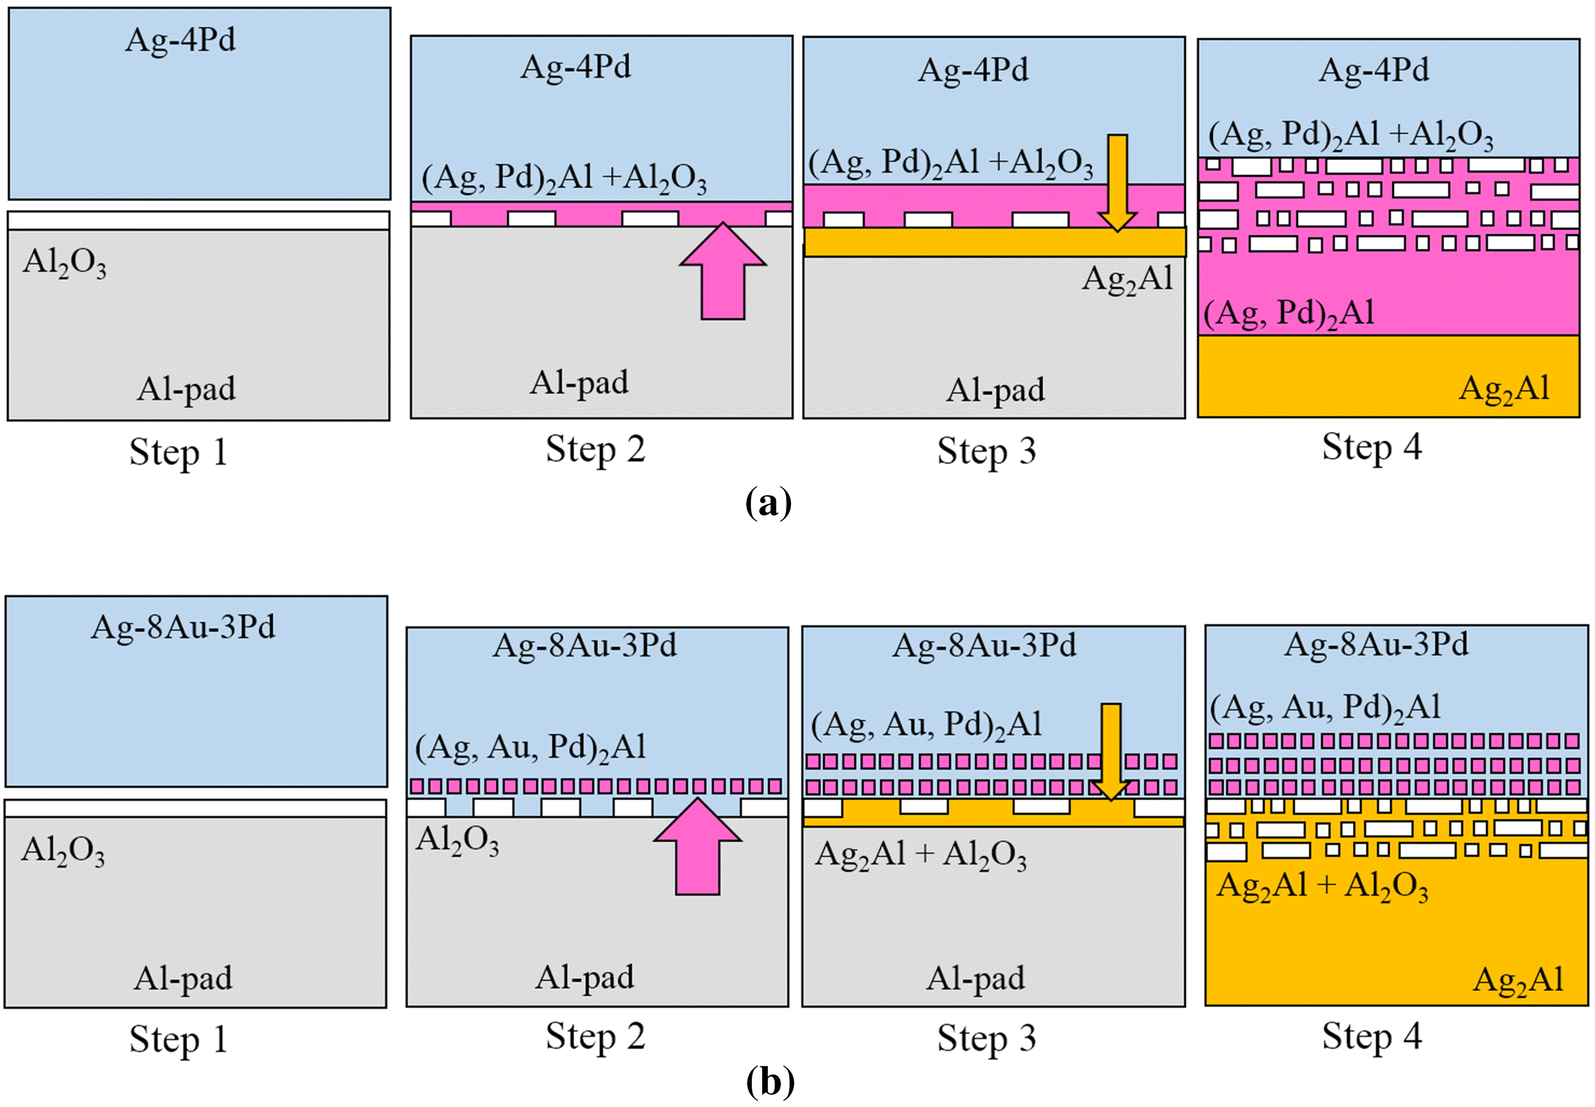 Effect Of Au Addition On The Microstructure And Properties Ag 4pd Crystal Focus Wiring Diagrams Open Image In New Window